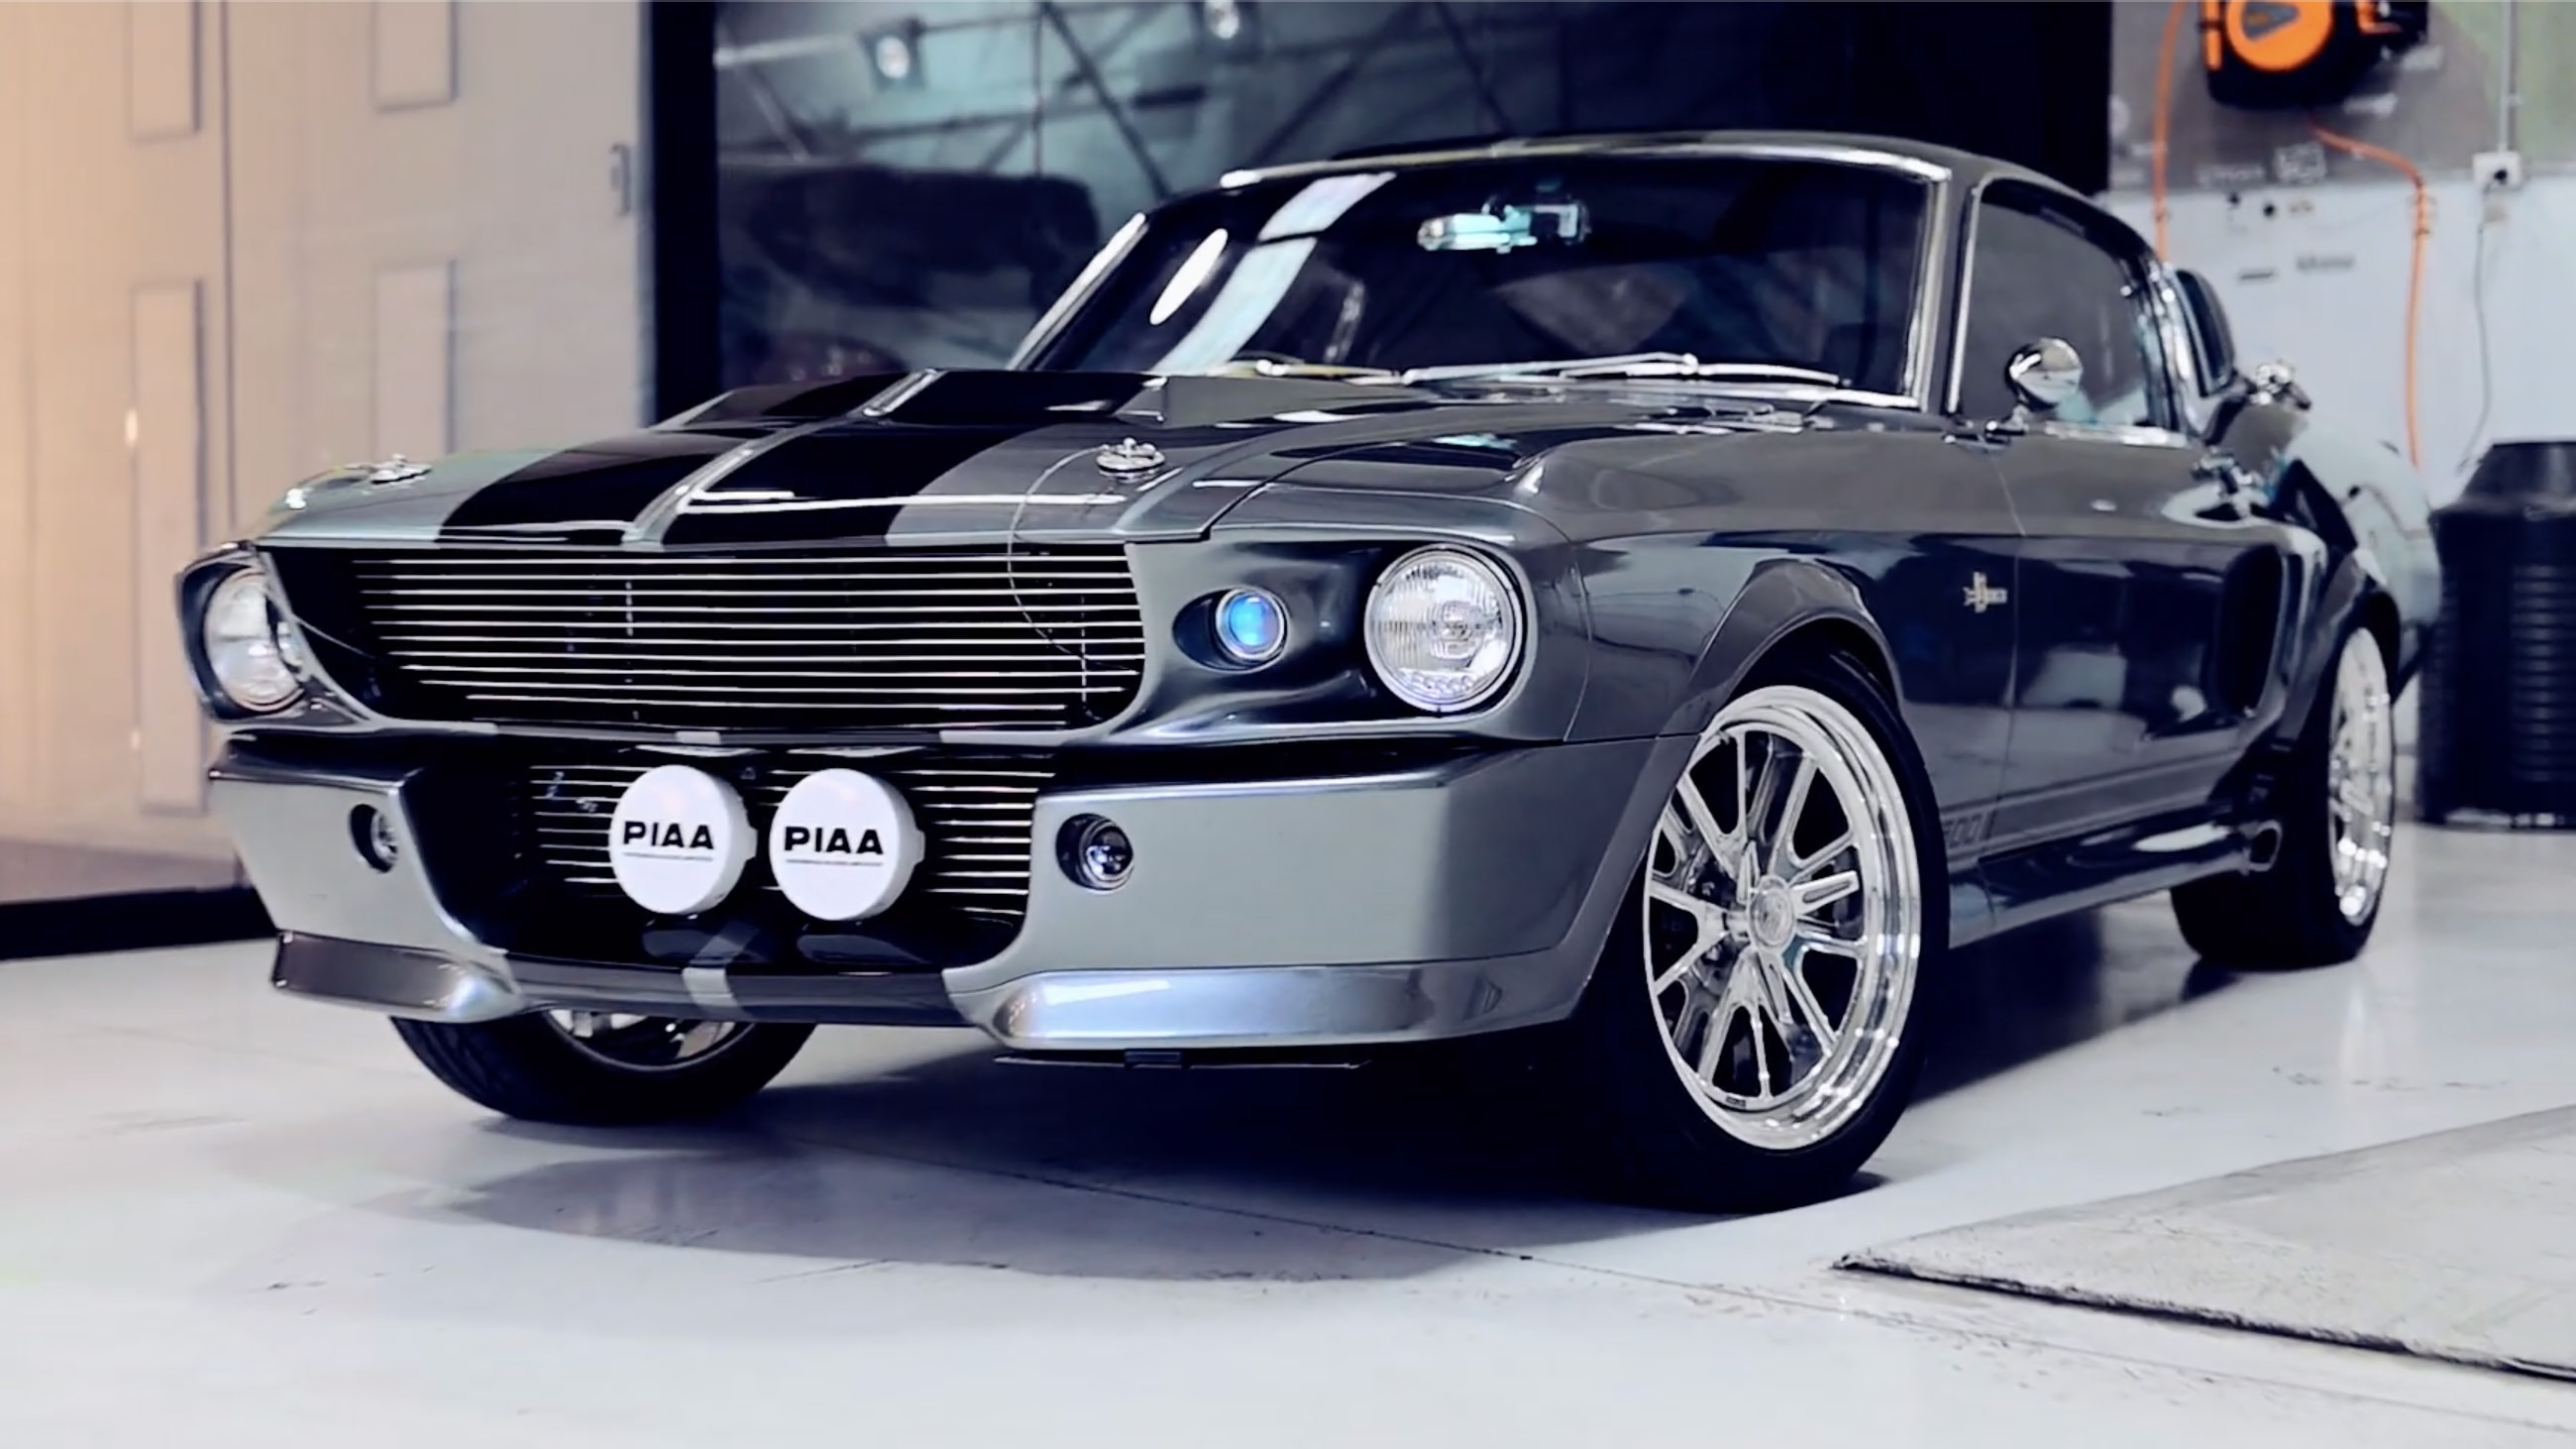 Shelby GT500 Eleanor - Detailing in sixty seconds